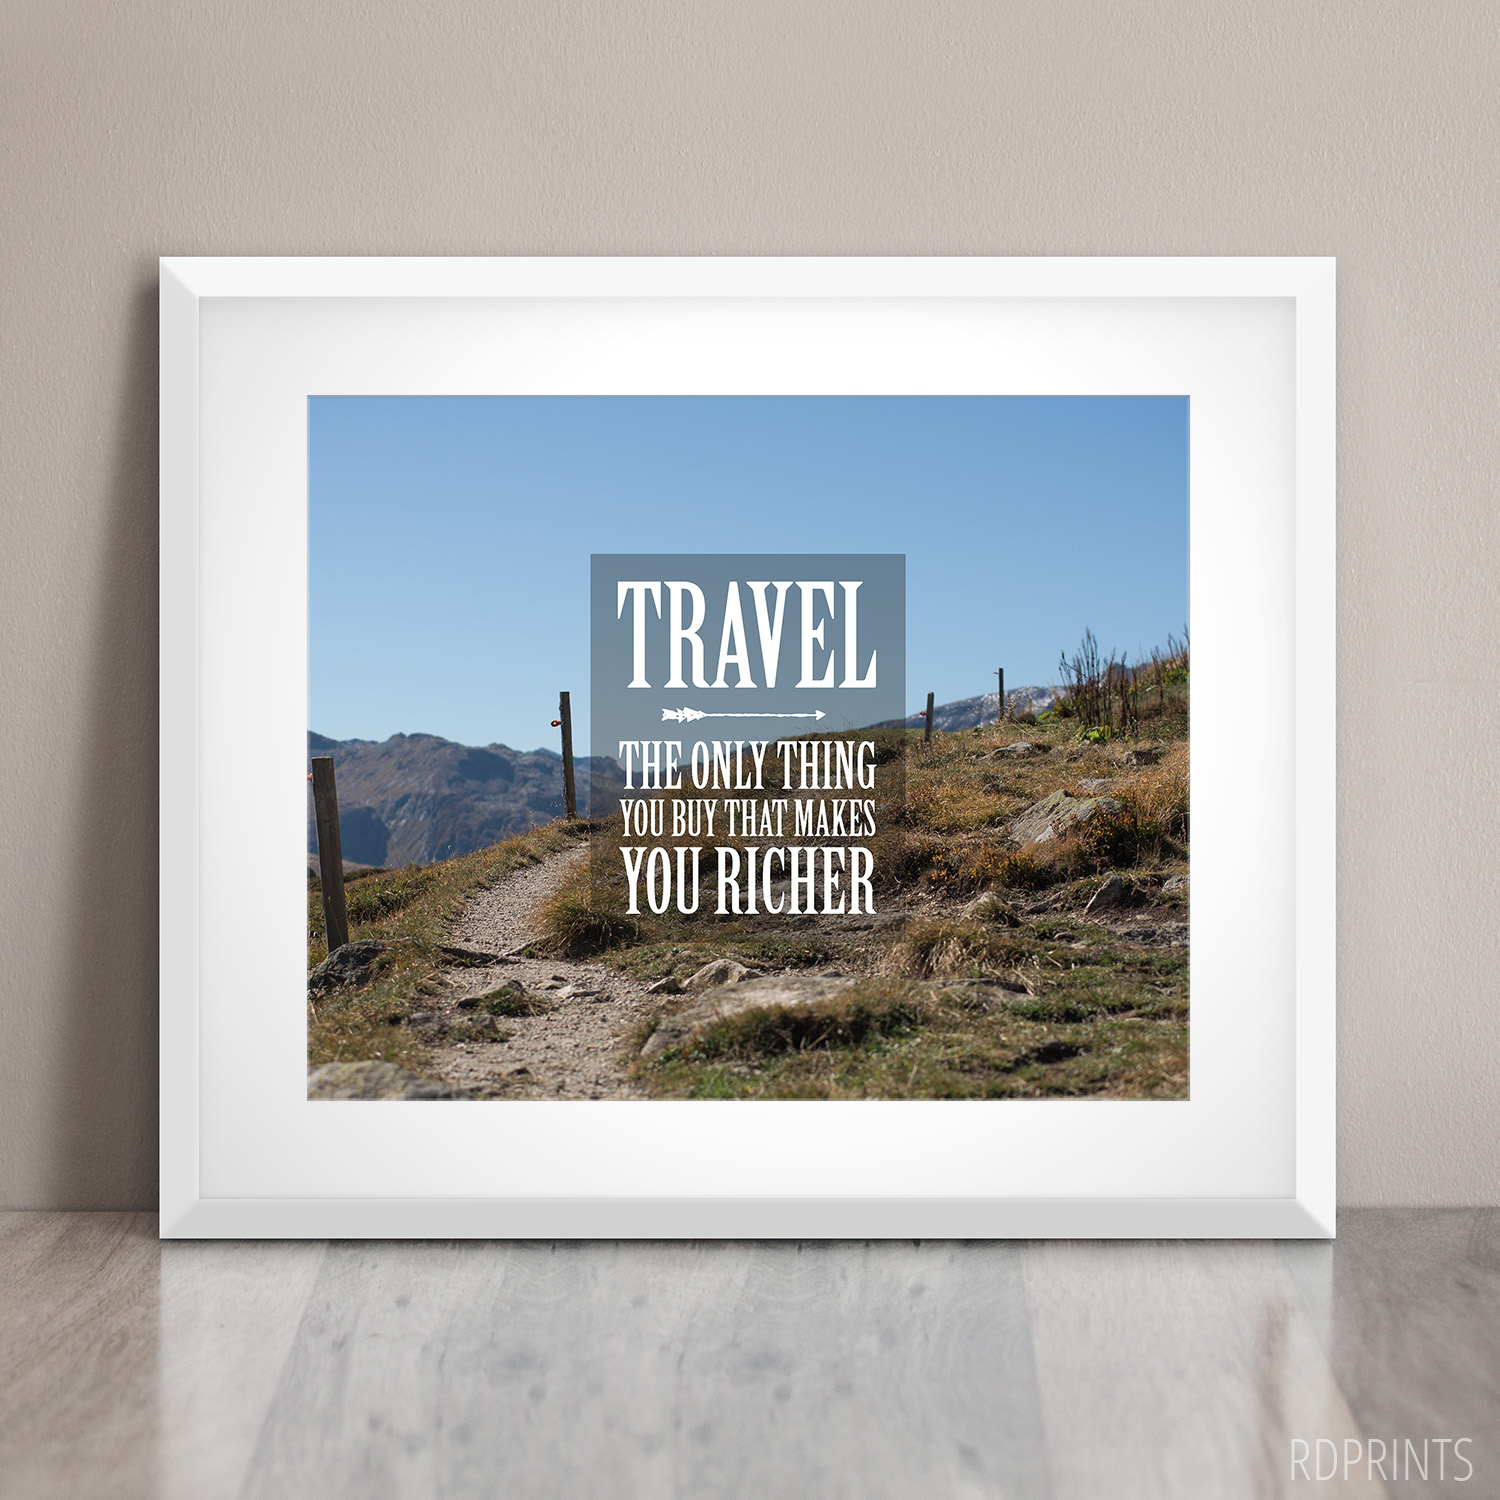 travel | word art | RDPRINTS on ETSY